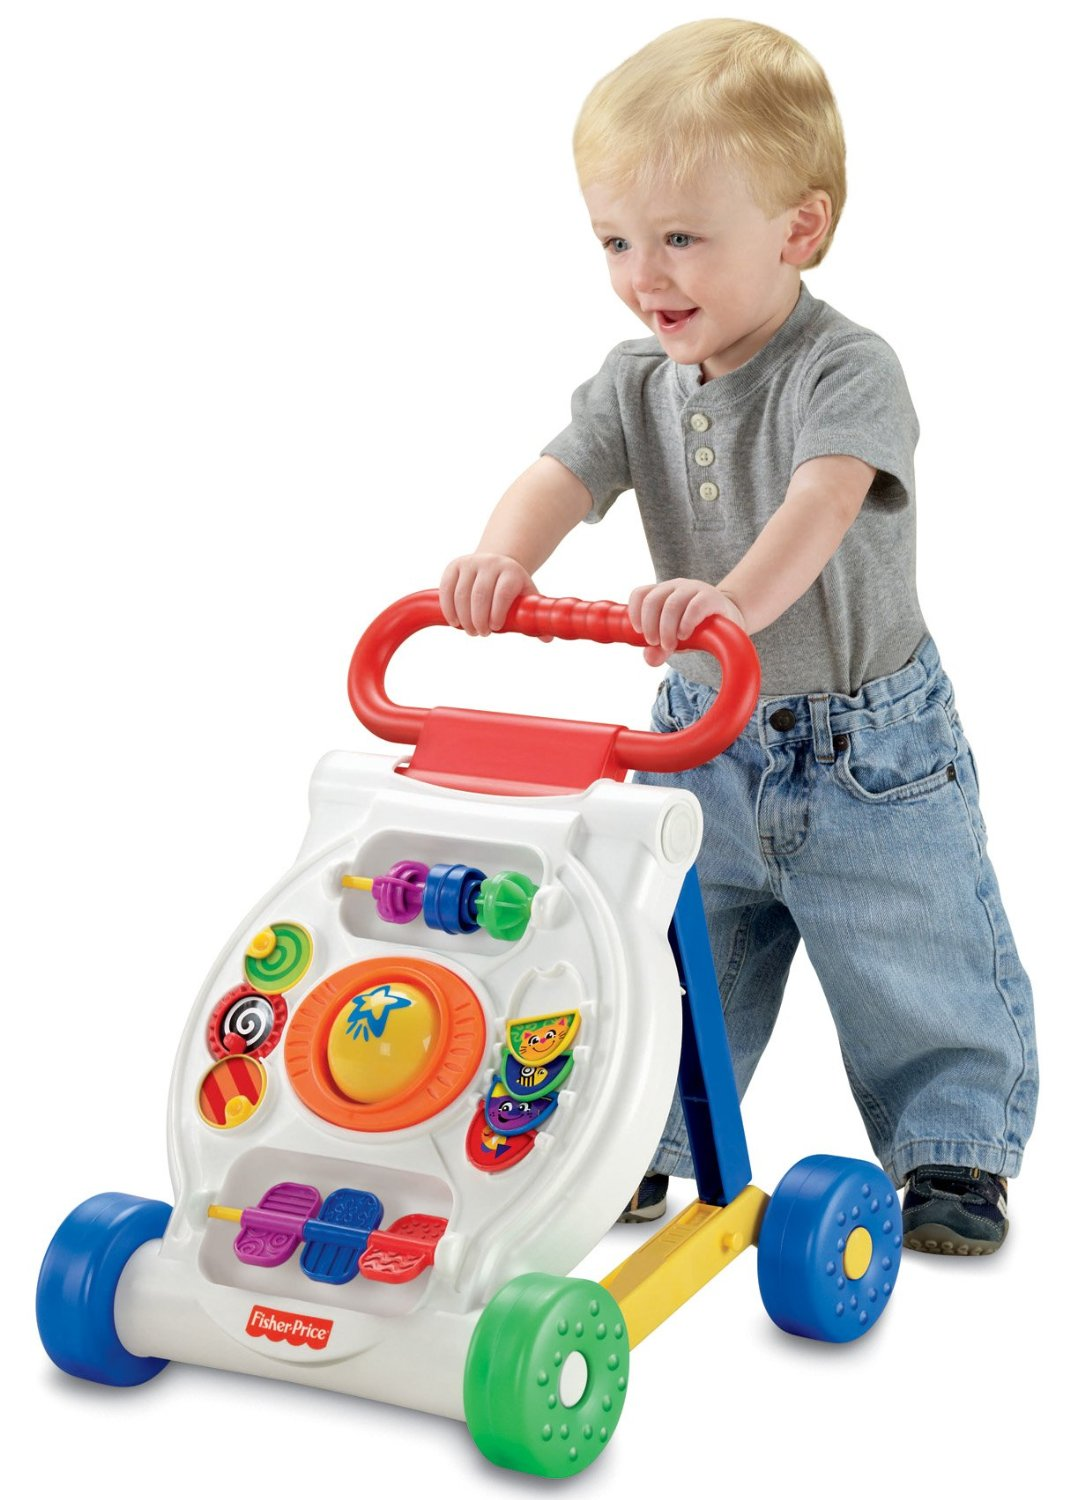 Toys For Under 1 Year : Total fab best gifts for one year old boys first birthday